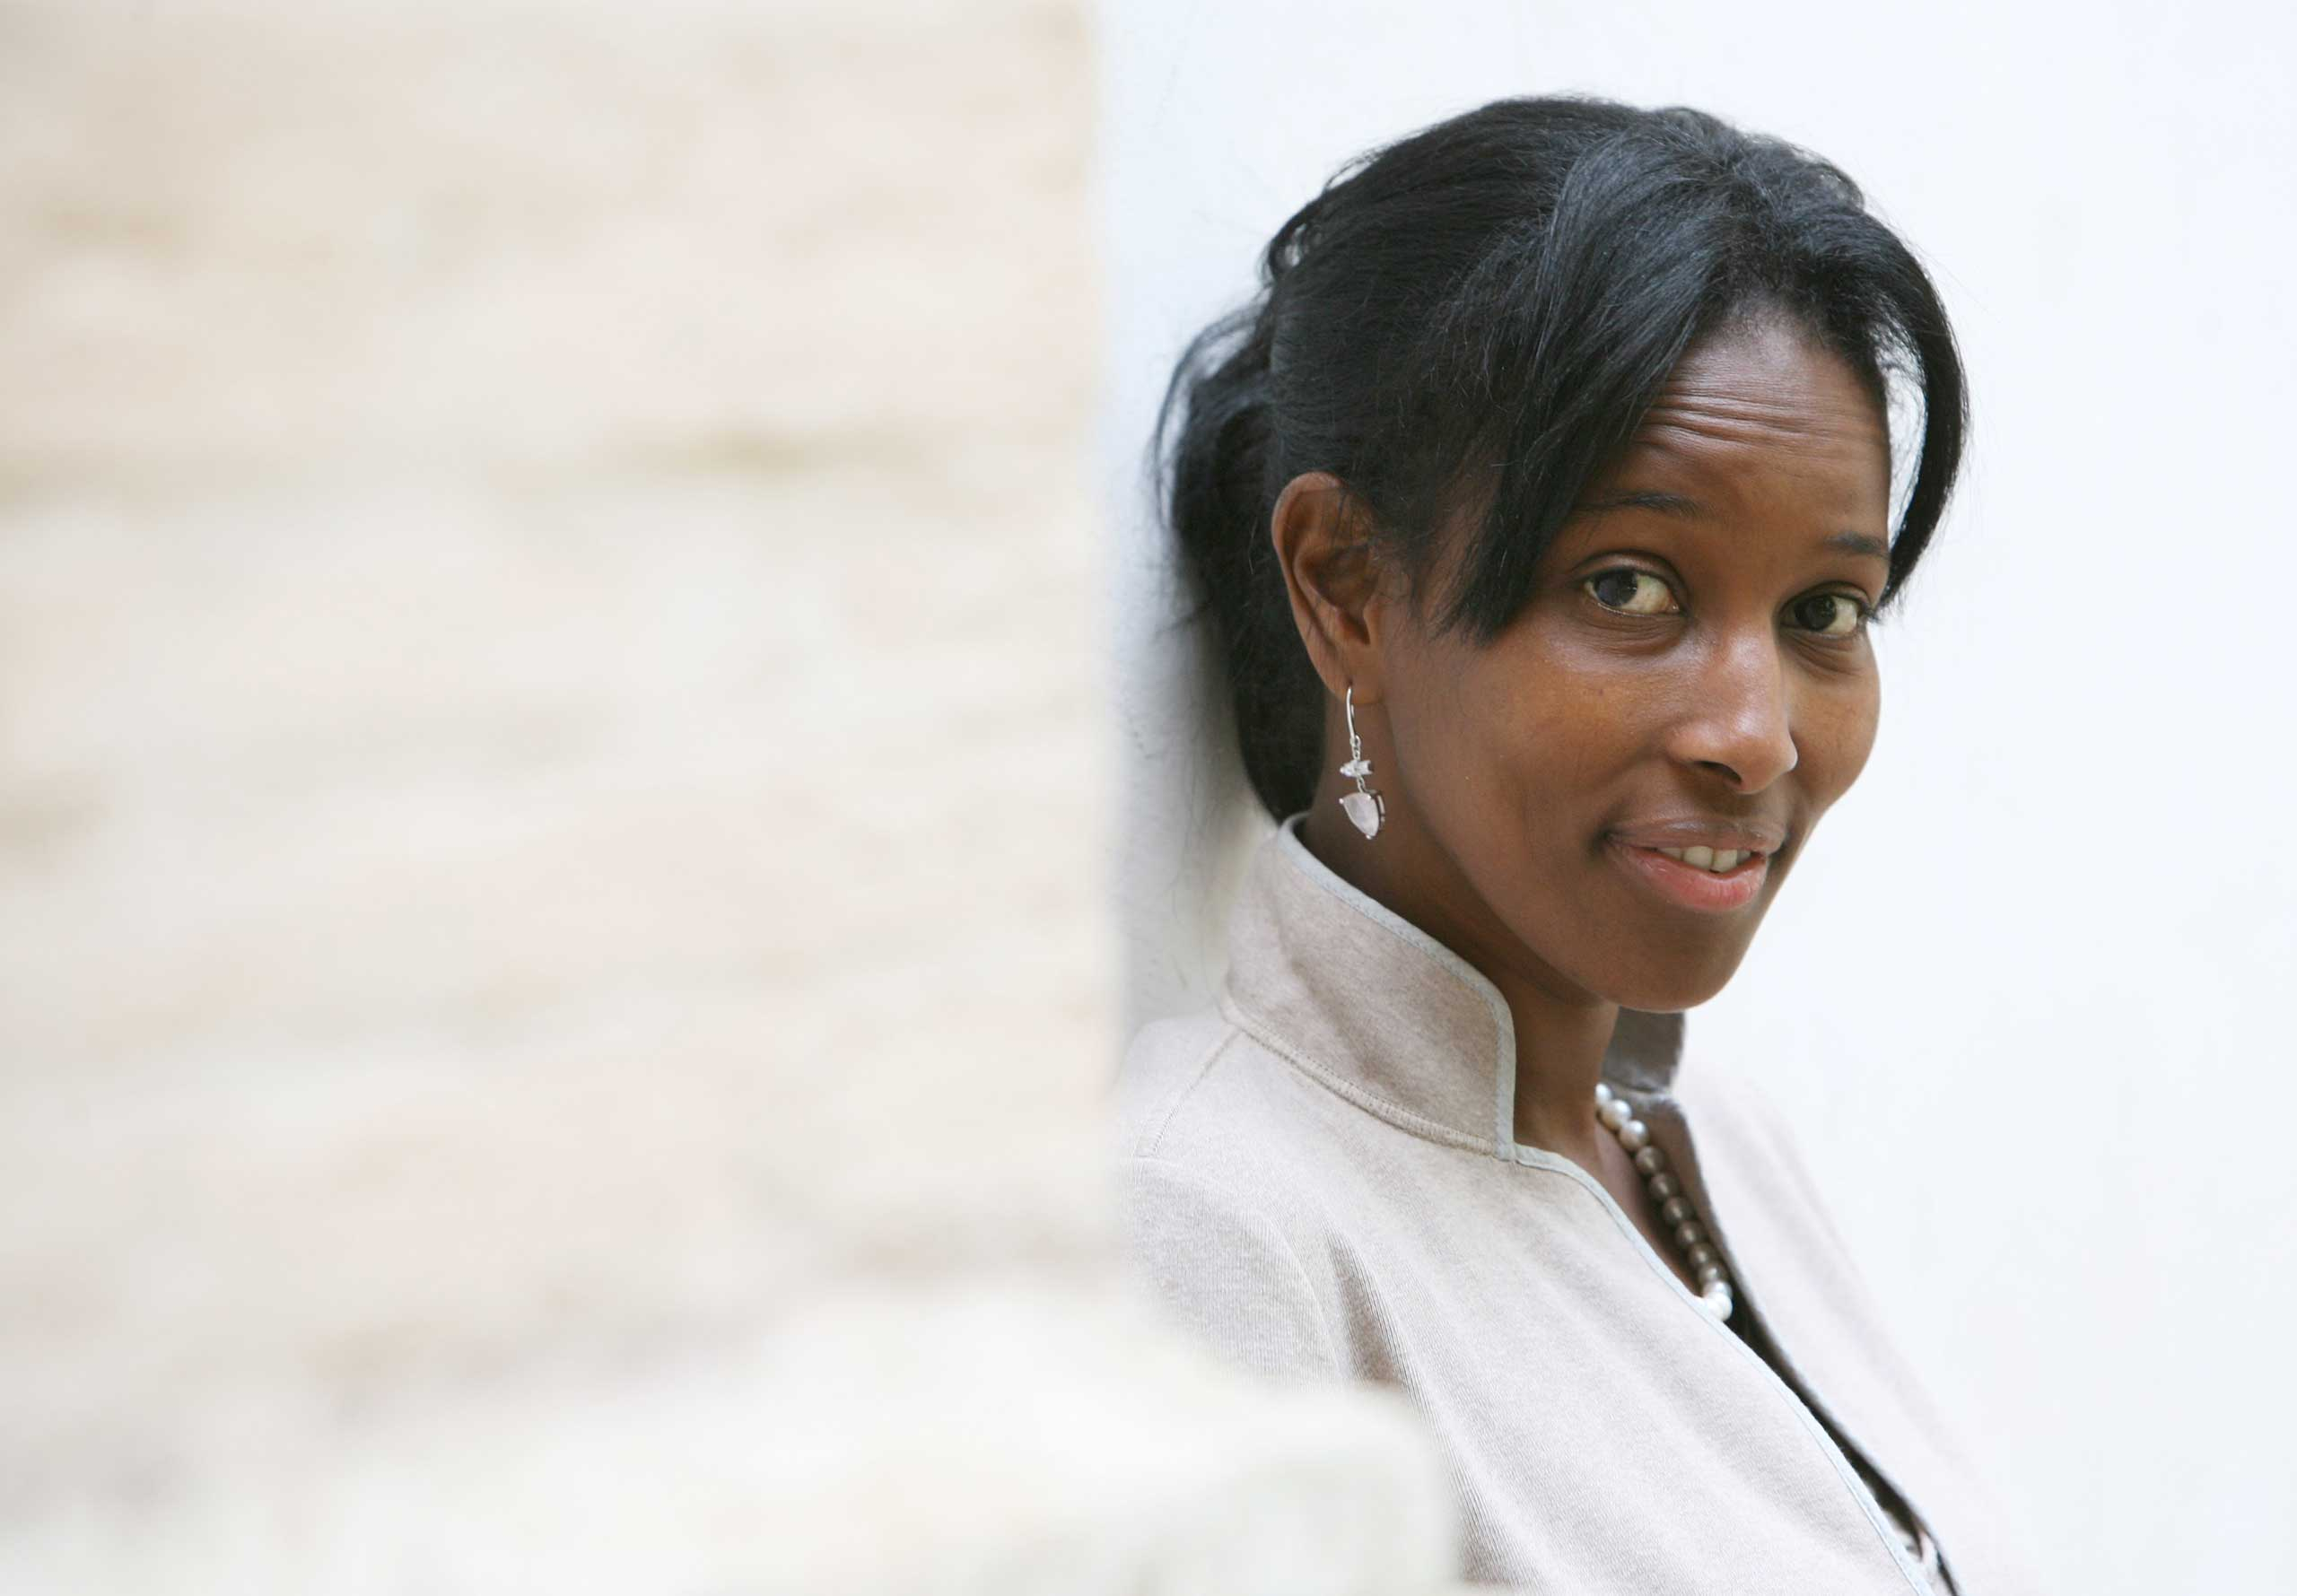 Somalian author Ayaan Hirsi Ali, former member of the Dutch parliament, in Rome in 2008.